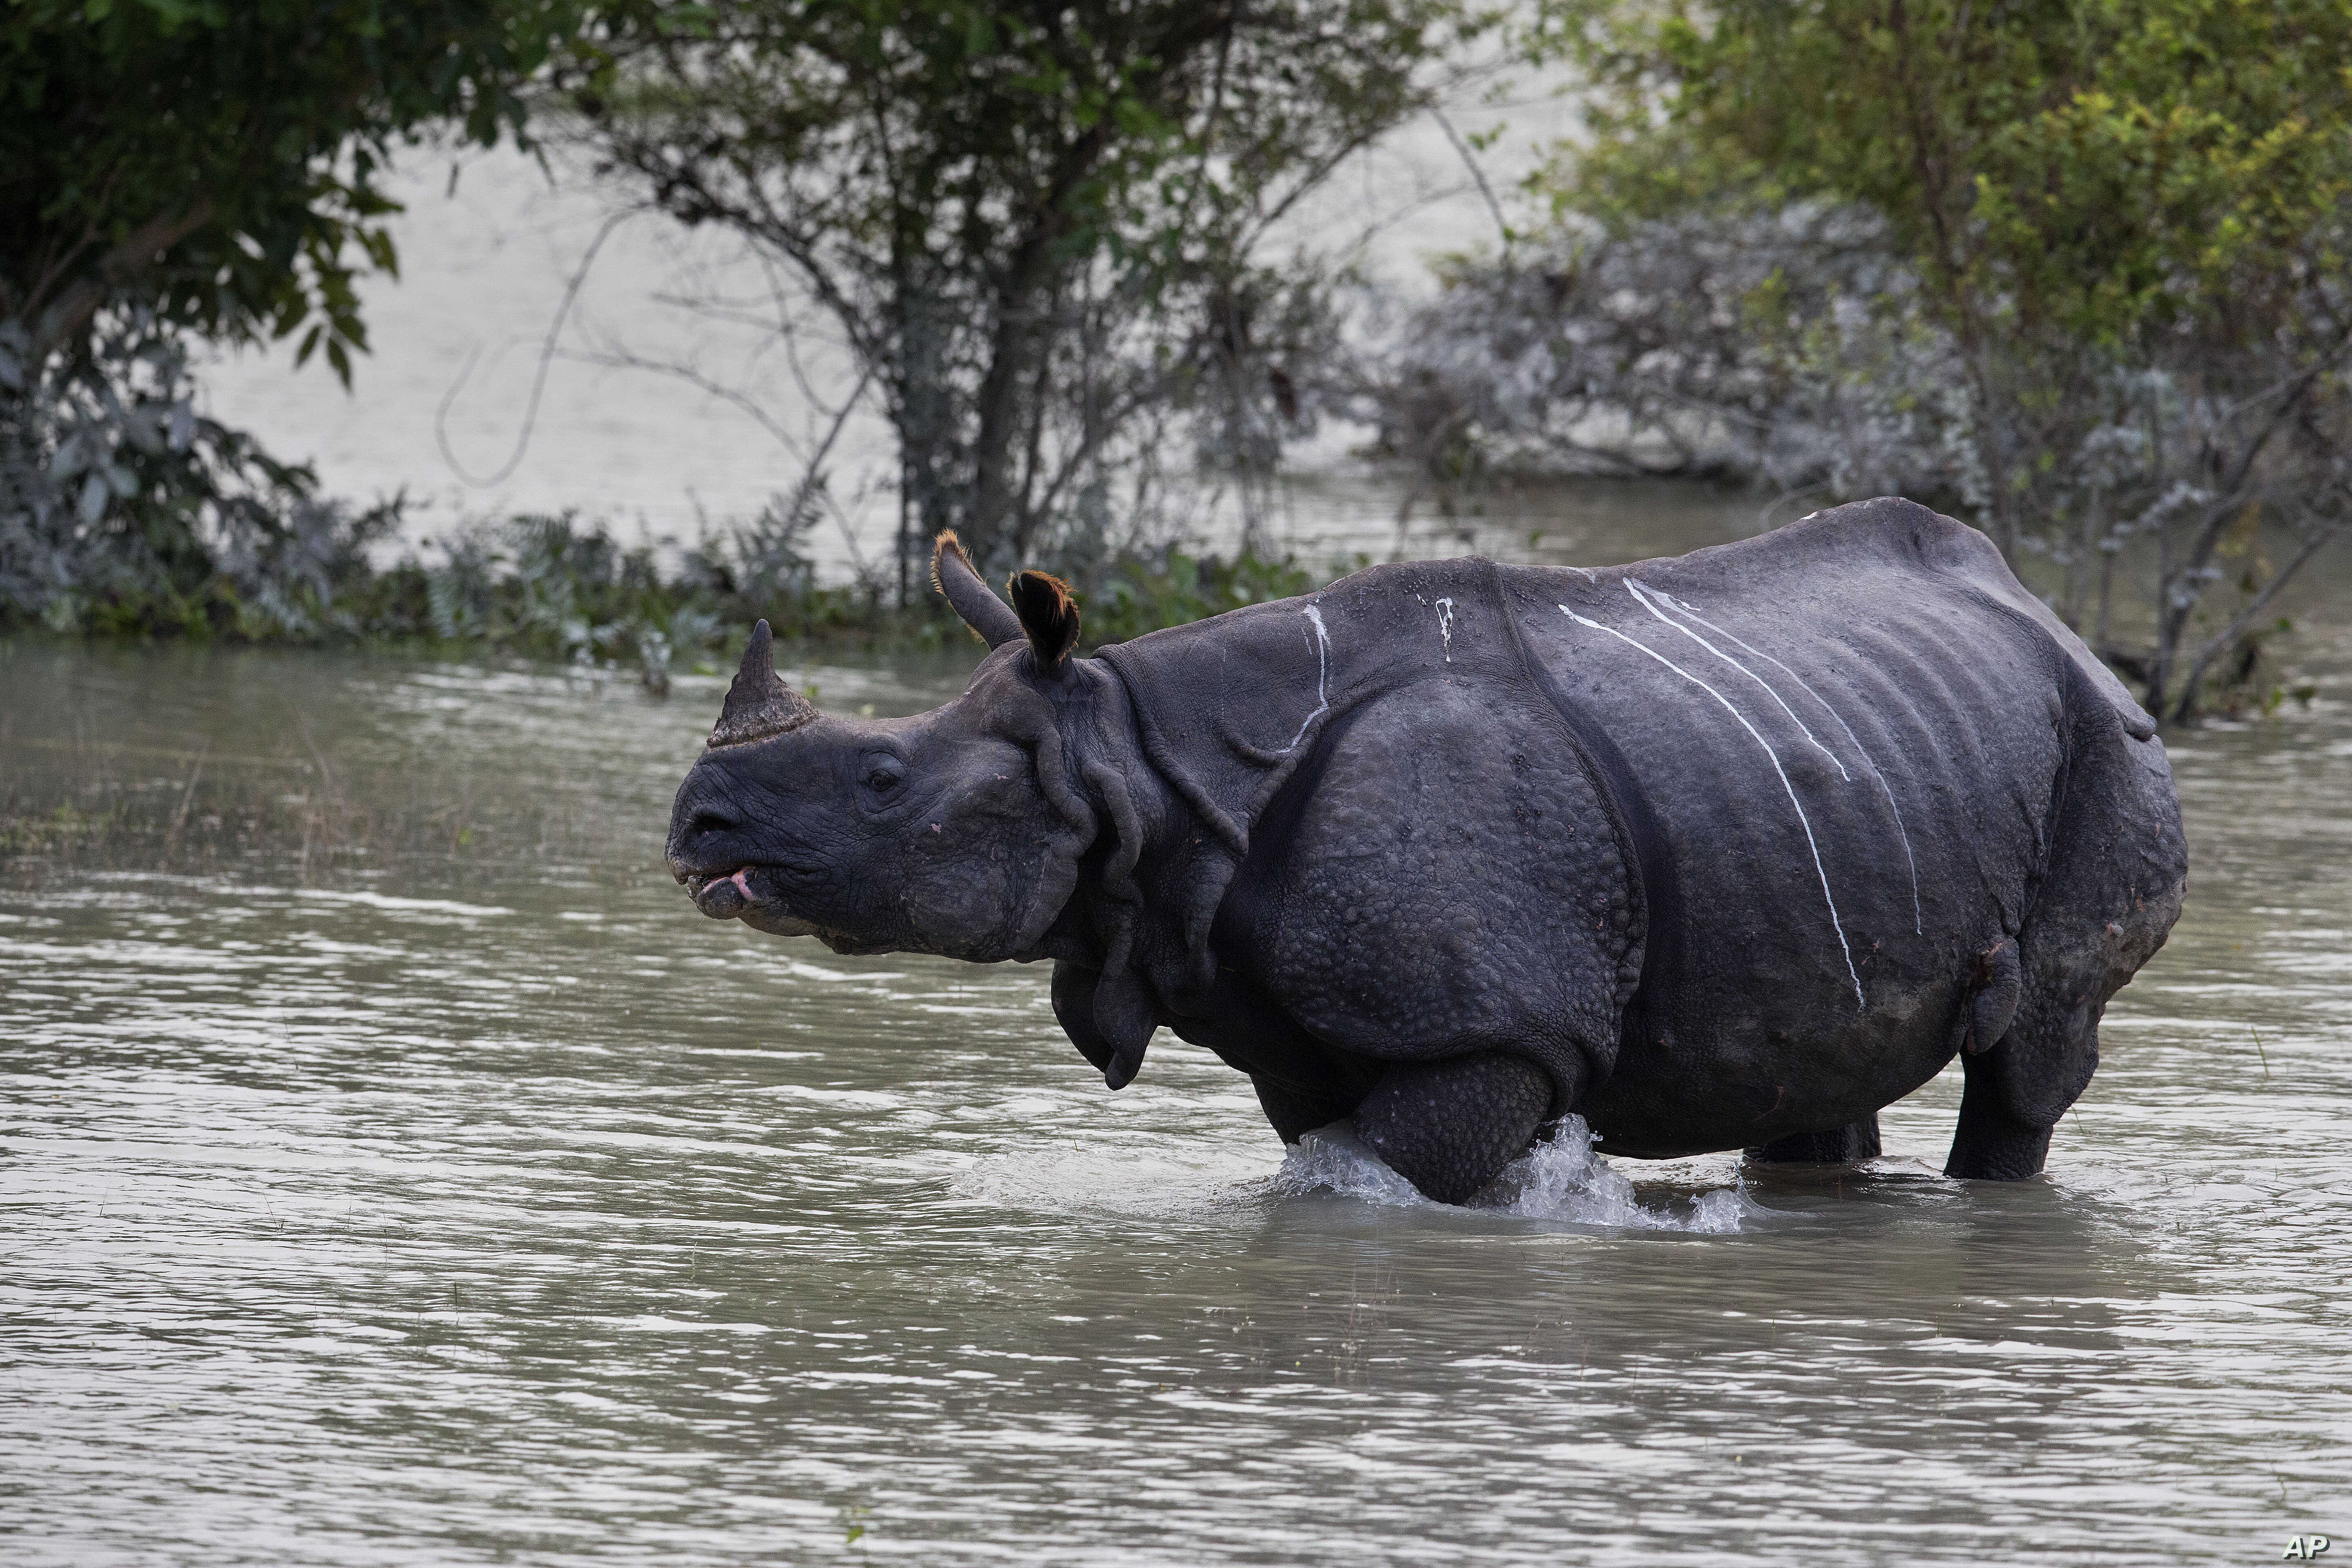 A one-horned rhinoceros walks in floodwaters in Pobitora wildlife sanctuary, east of Gauhati, India, July 19, 2019. The sanctuary has the highest density of the one-horned Rhinoceros in the world.